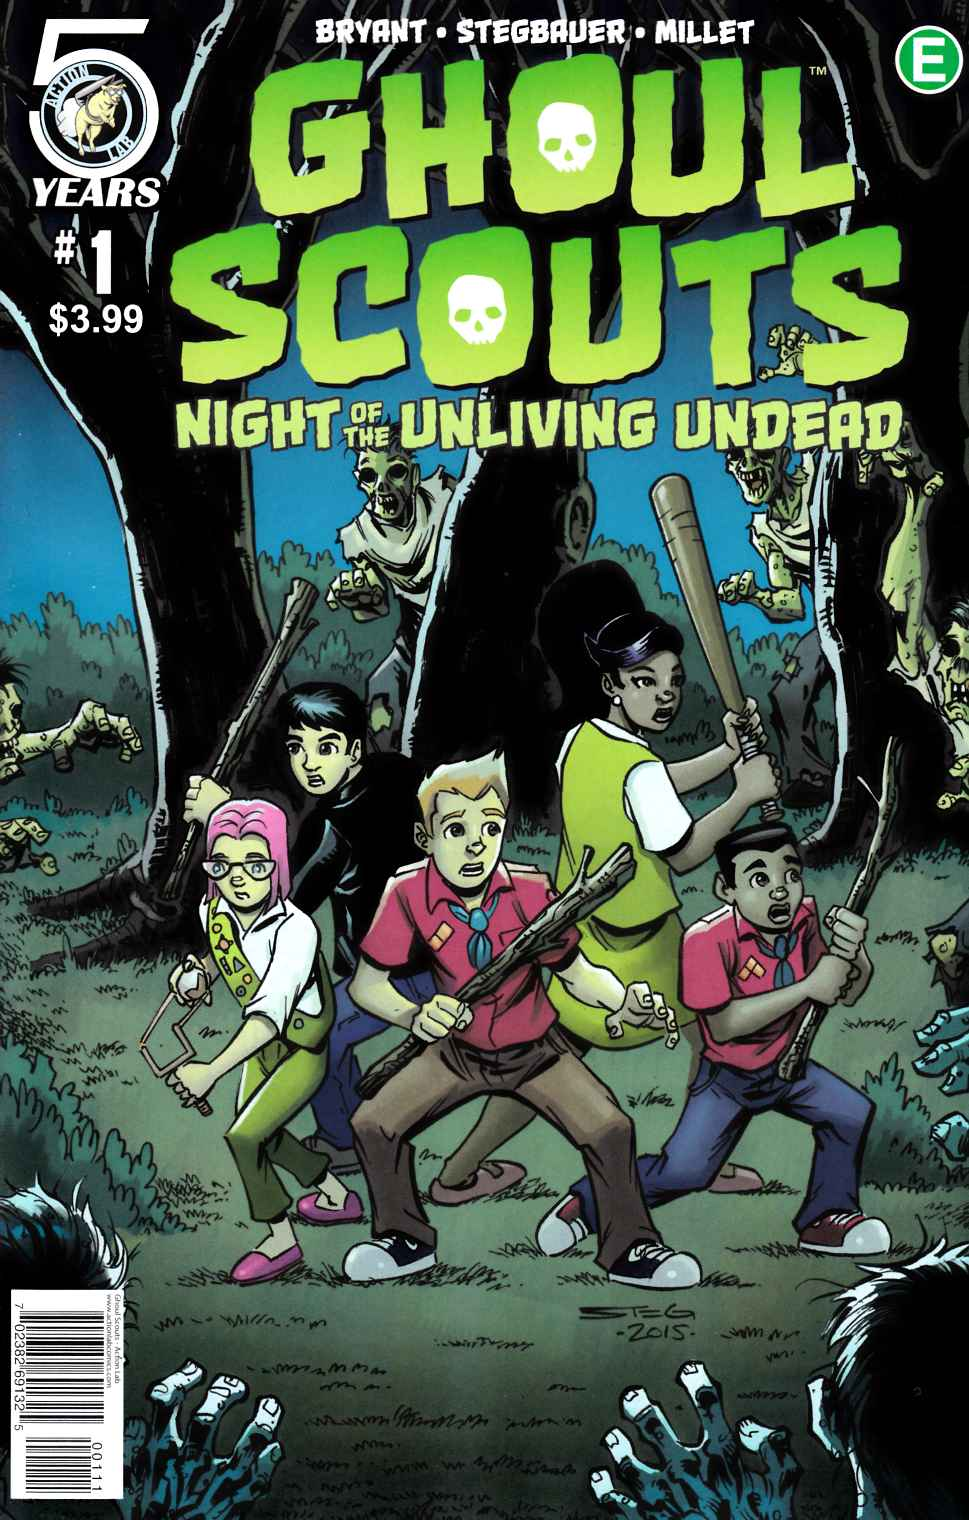 Ghoul Scouts Night of the Unliving Undead #1 Cover A [Action Lab Comic] THUMBNAIL